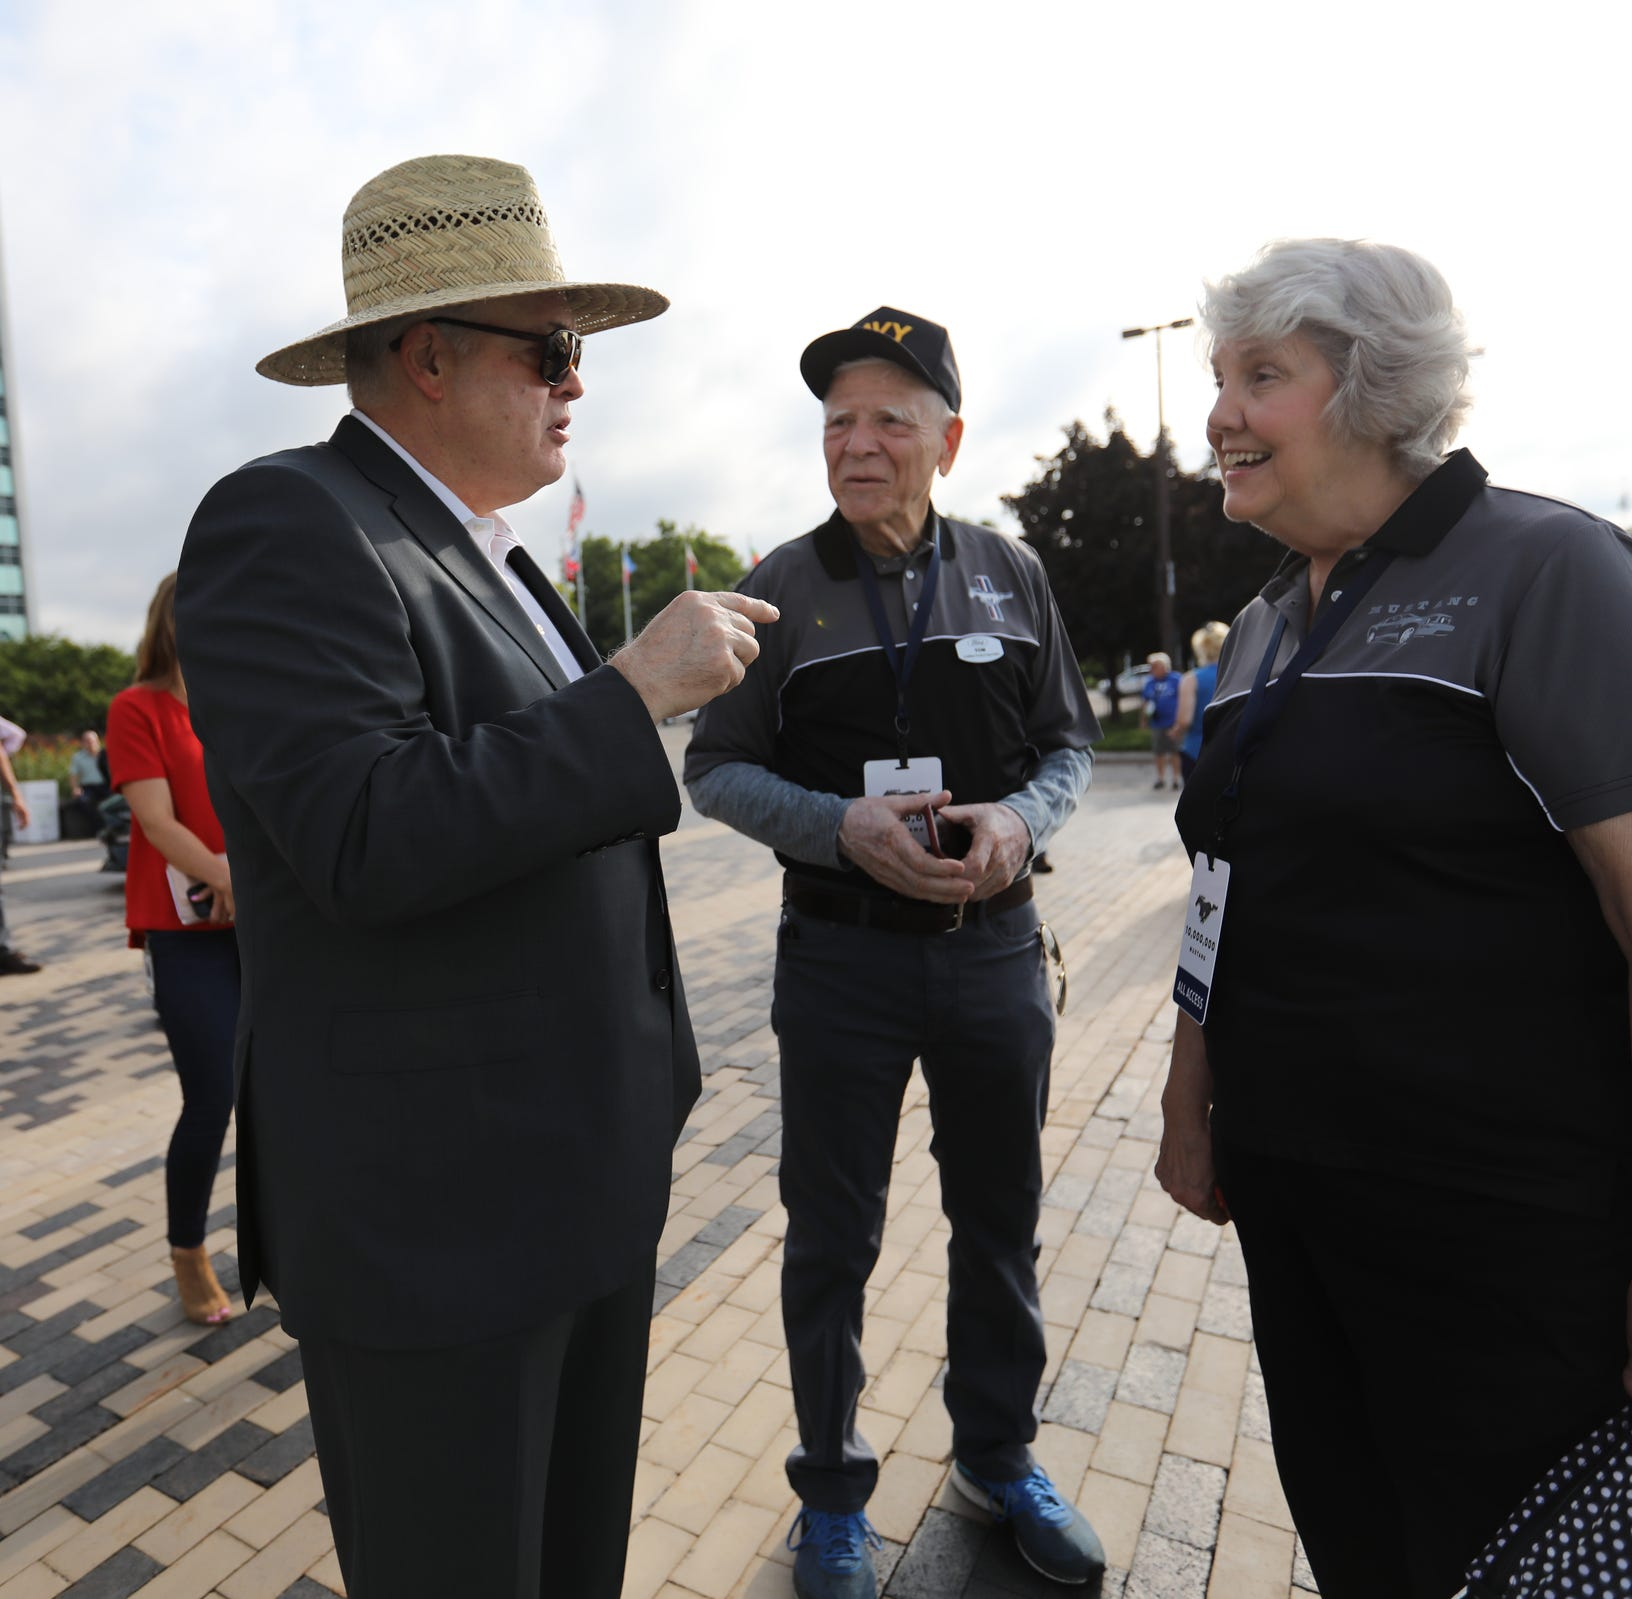 Ford Chief Executive Officer James Hackett, left, talks with Tom and Gail Wise, 76, of Park Ridge, Illinois about their 1964 Ford Mustang convertible, during a Ford event celebrating the 10,000,000 Mustang at the Ford Motor Company World Headquarters in Dearborn on Wed., Aug 8, 2018.